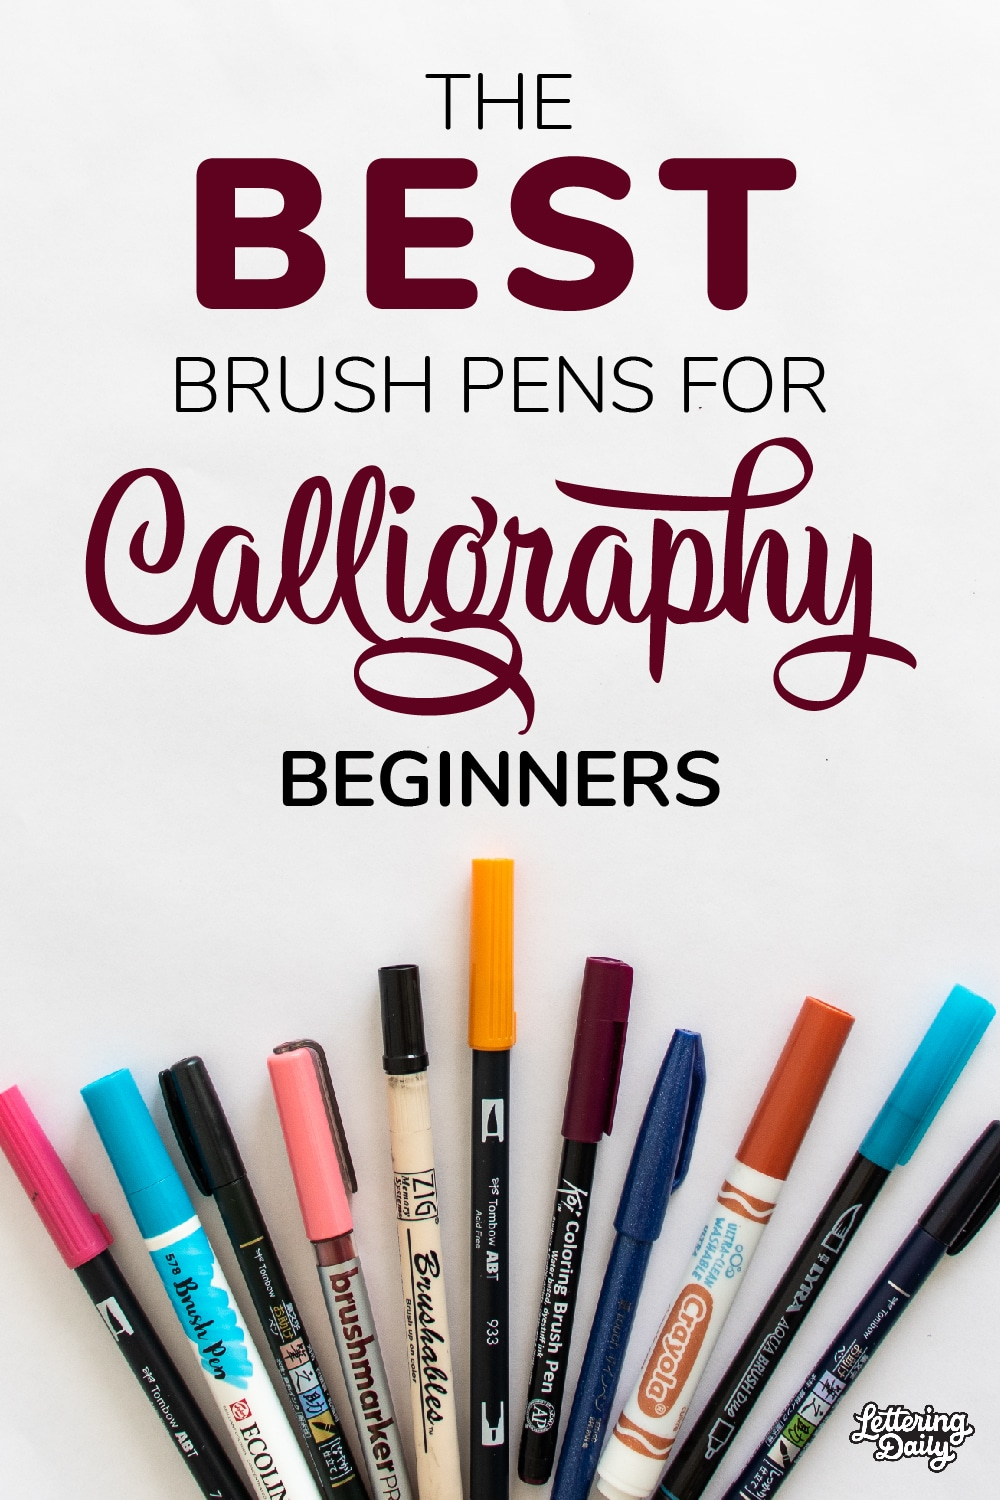 Best brush pens for calligraphy beginners - Pinterest Pin- Lettering Daily